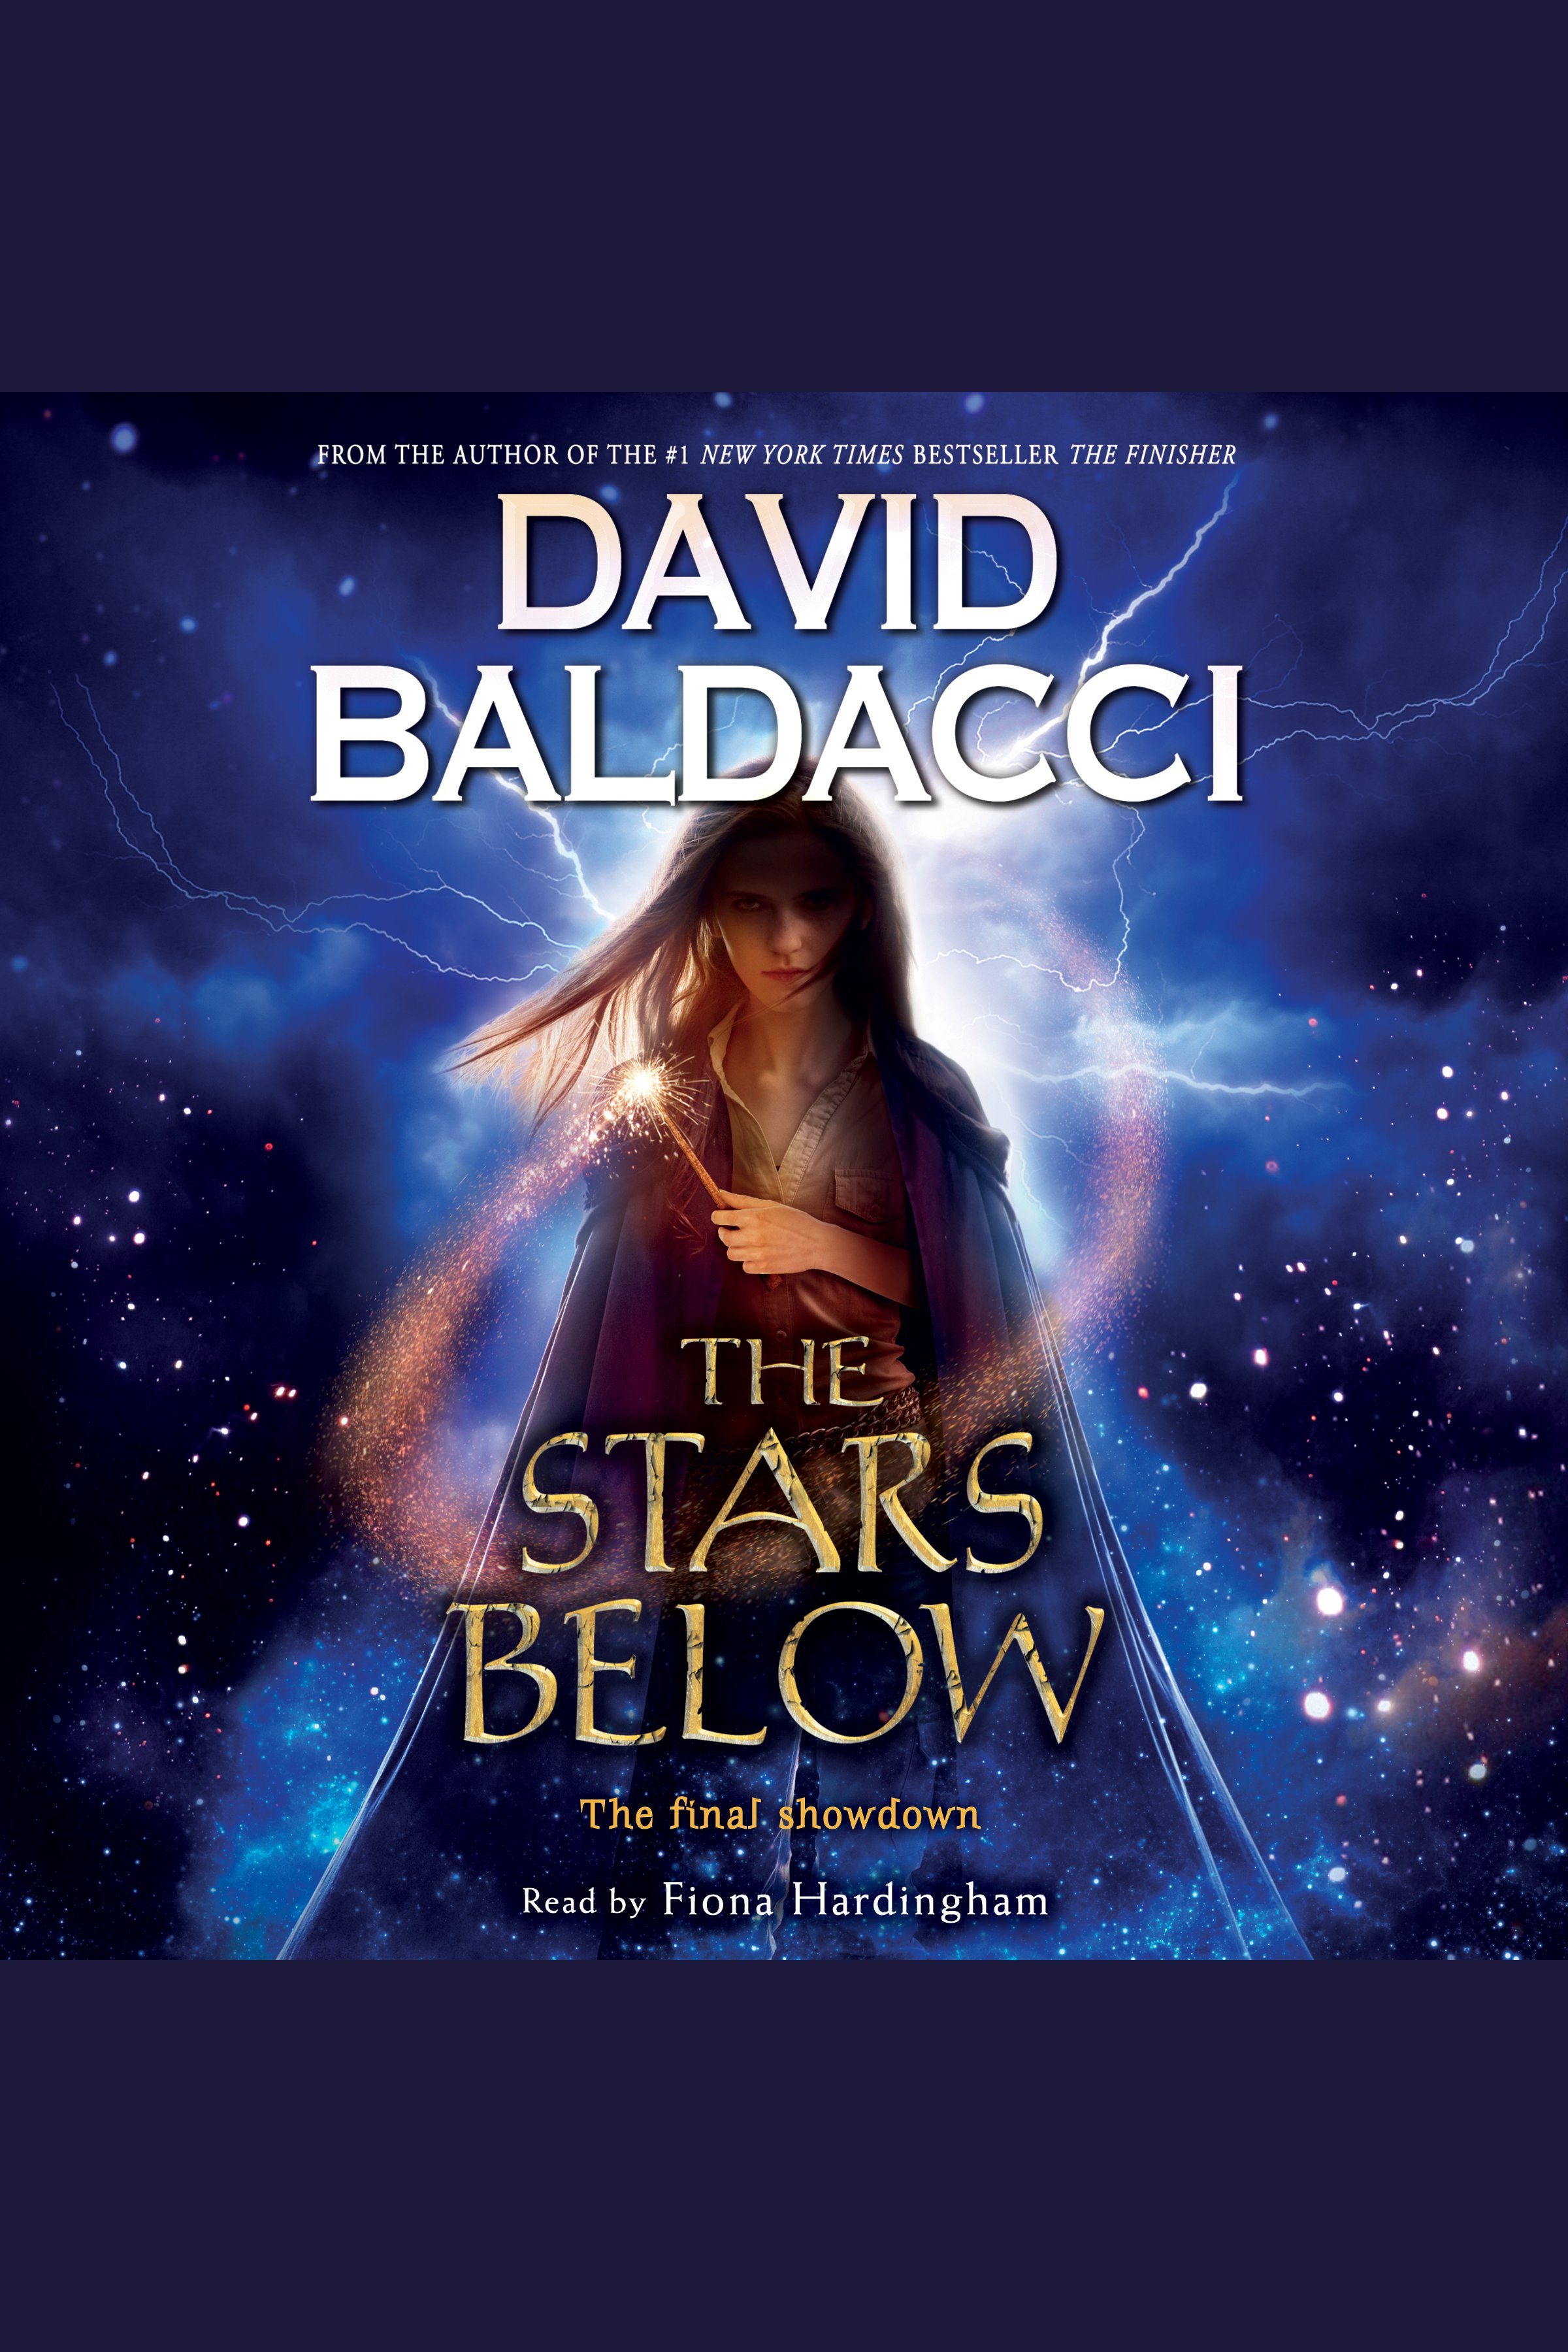 The stars below the final showdown cover image